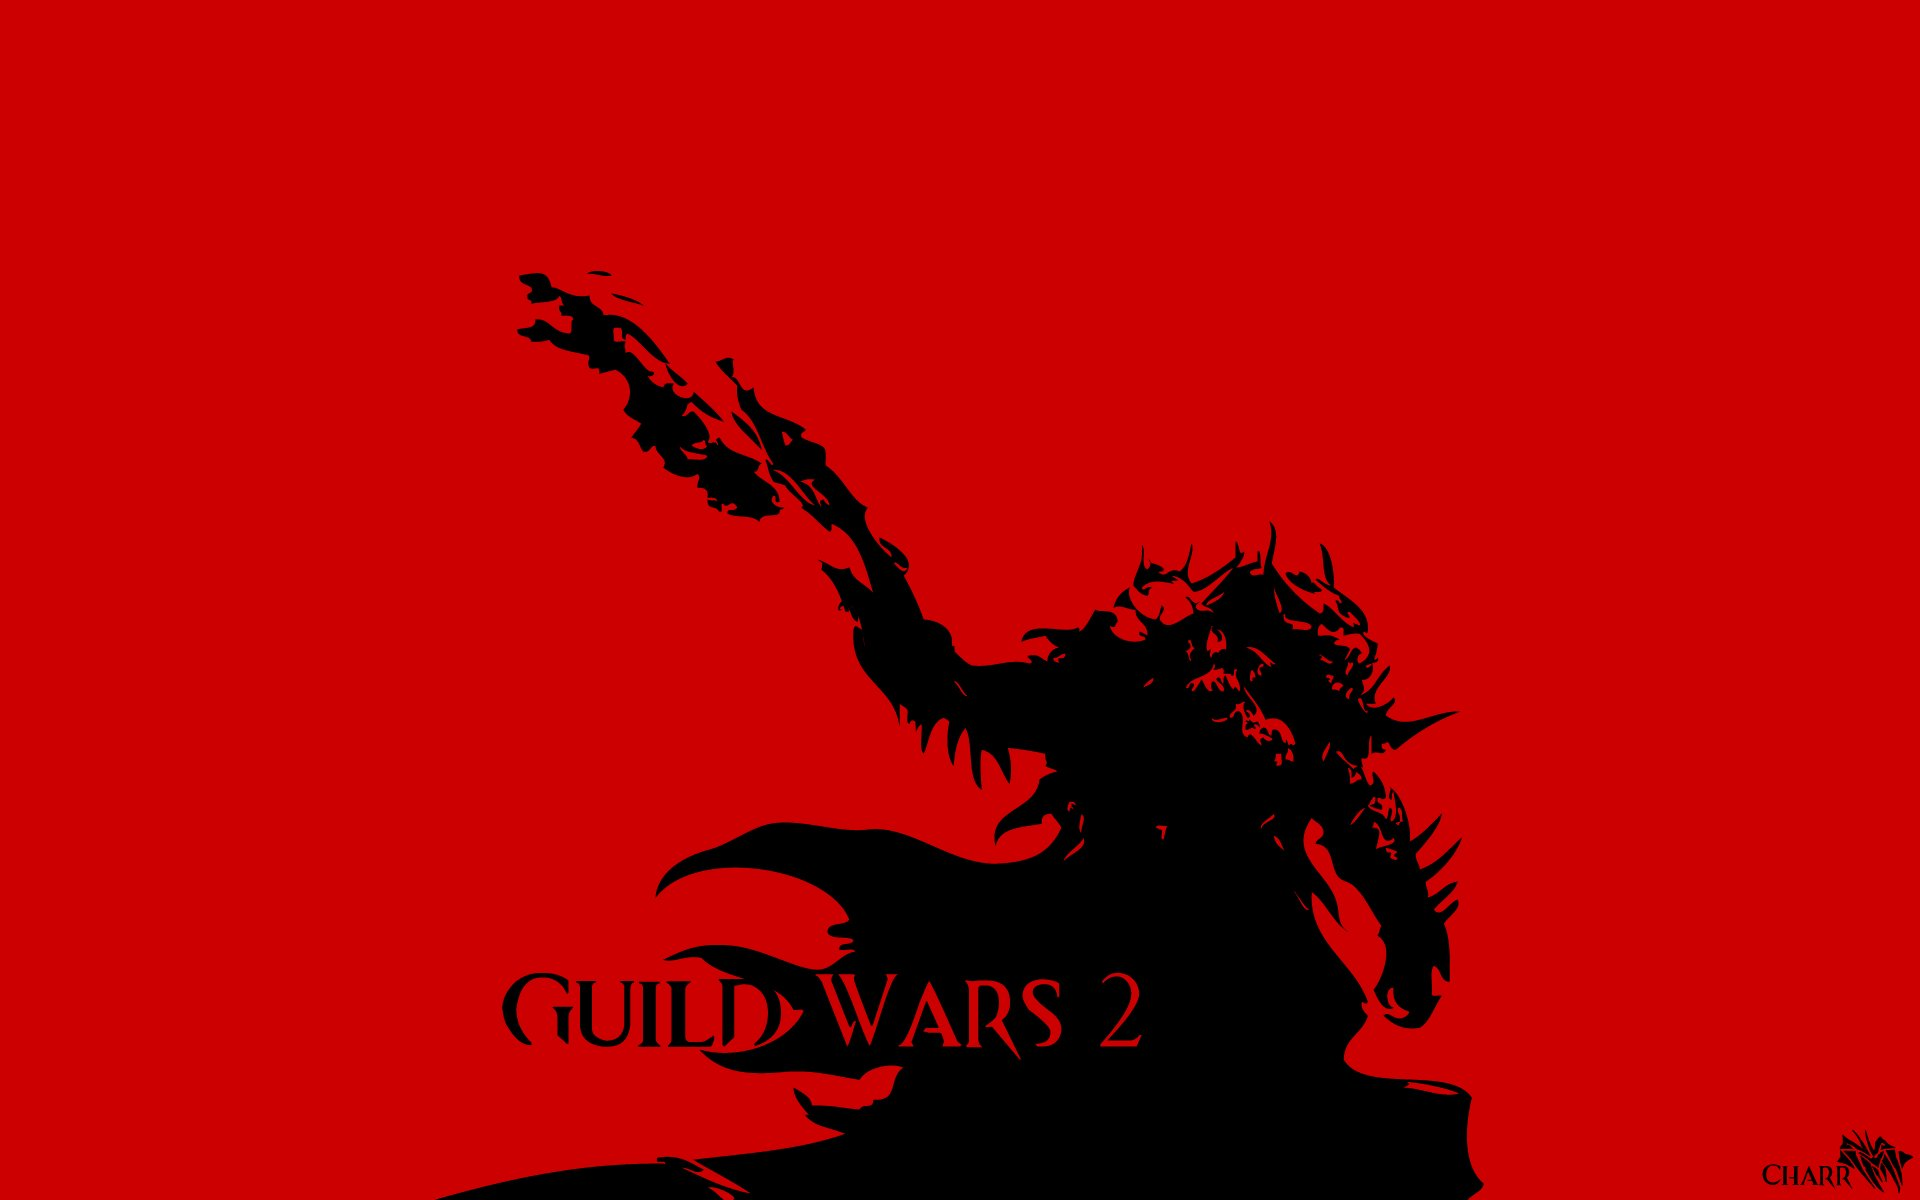 Guild Wars 2 Video Games Charr Wallpapers Hd Desktop: Guild Wars 2 Full HD Wallpaper And Background